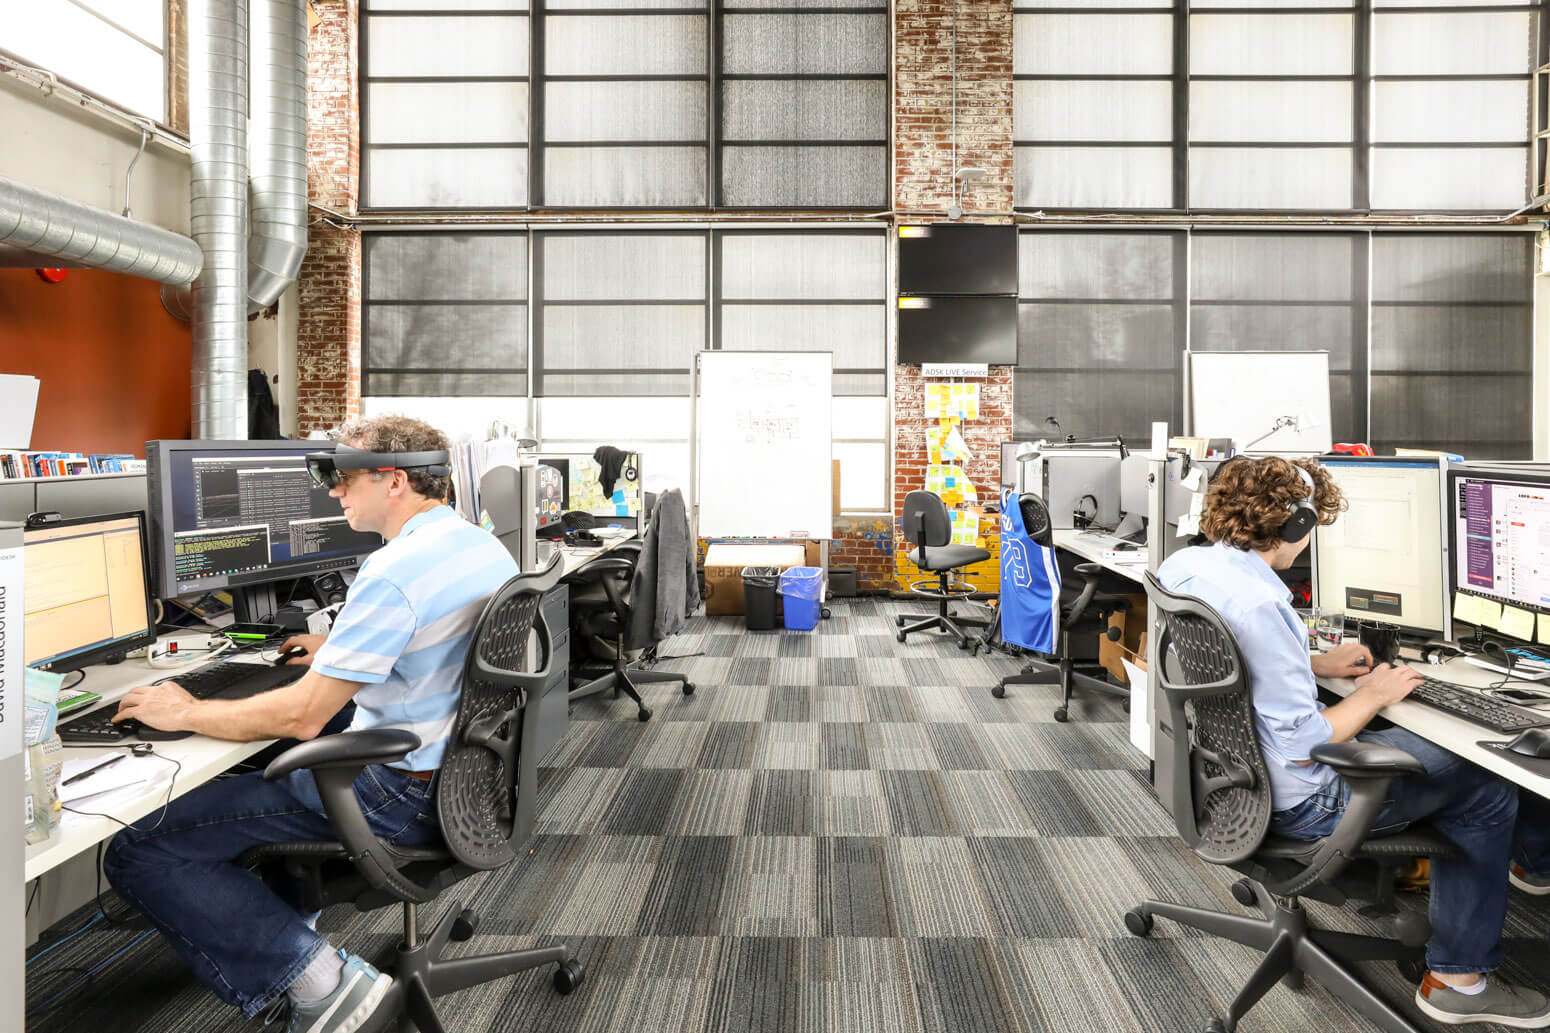 Autodesk Montreal Office Killer Spaces-25